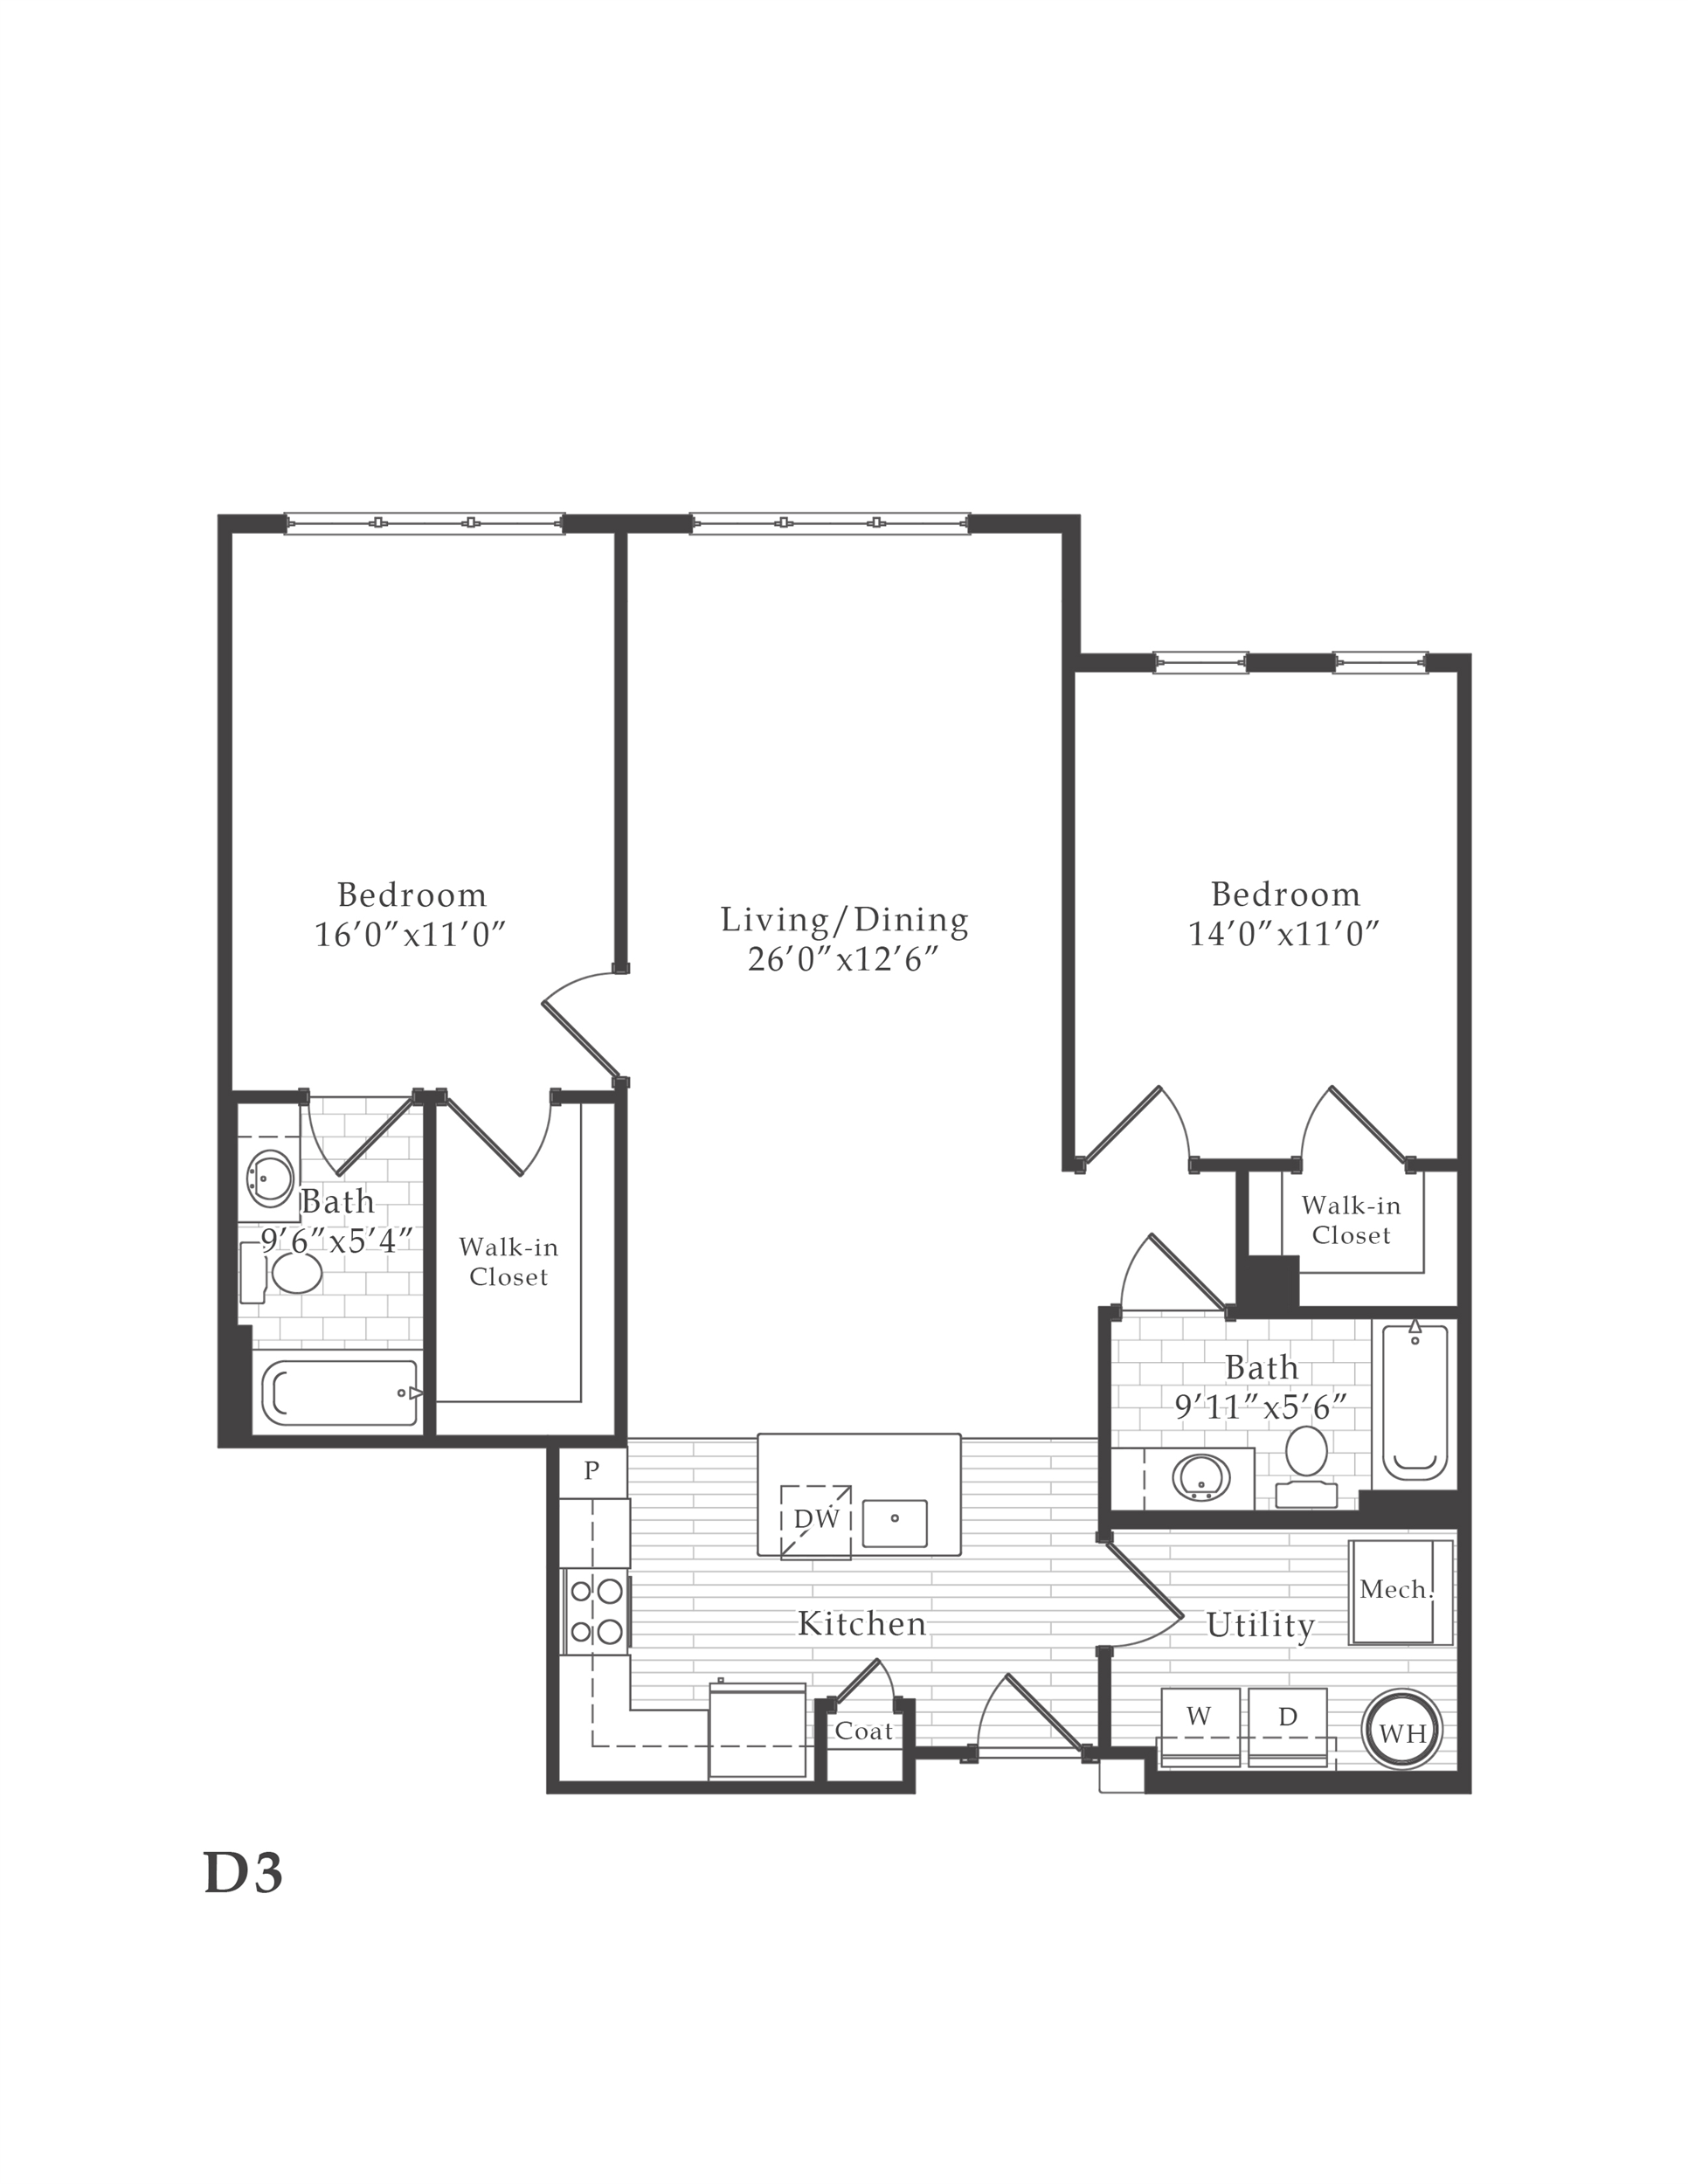 816bc06 md laurel thevine p0637686 vined31215 2 floorplan